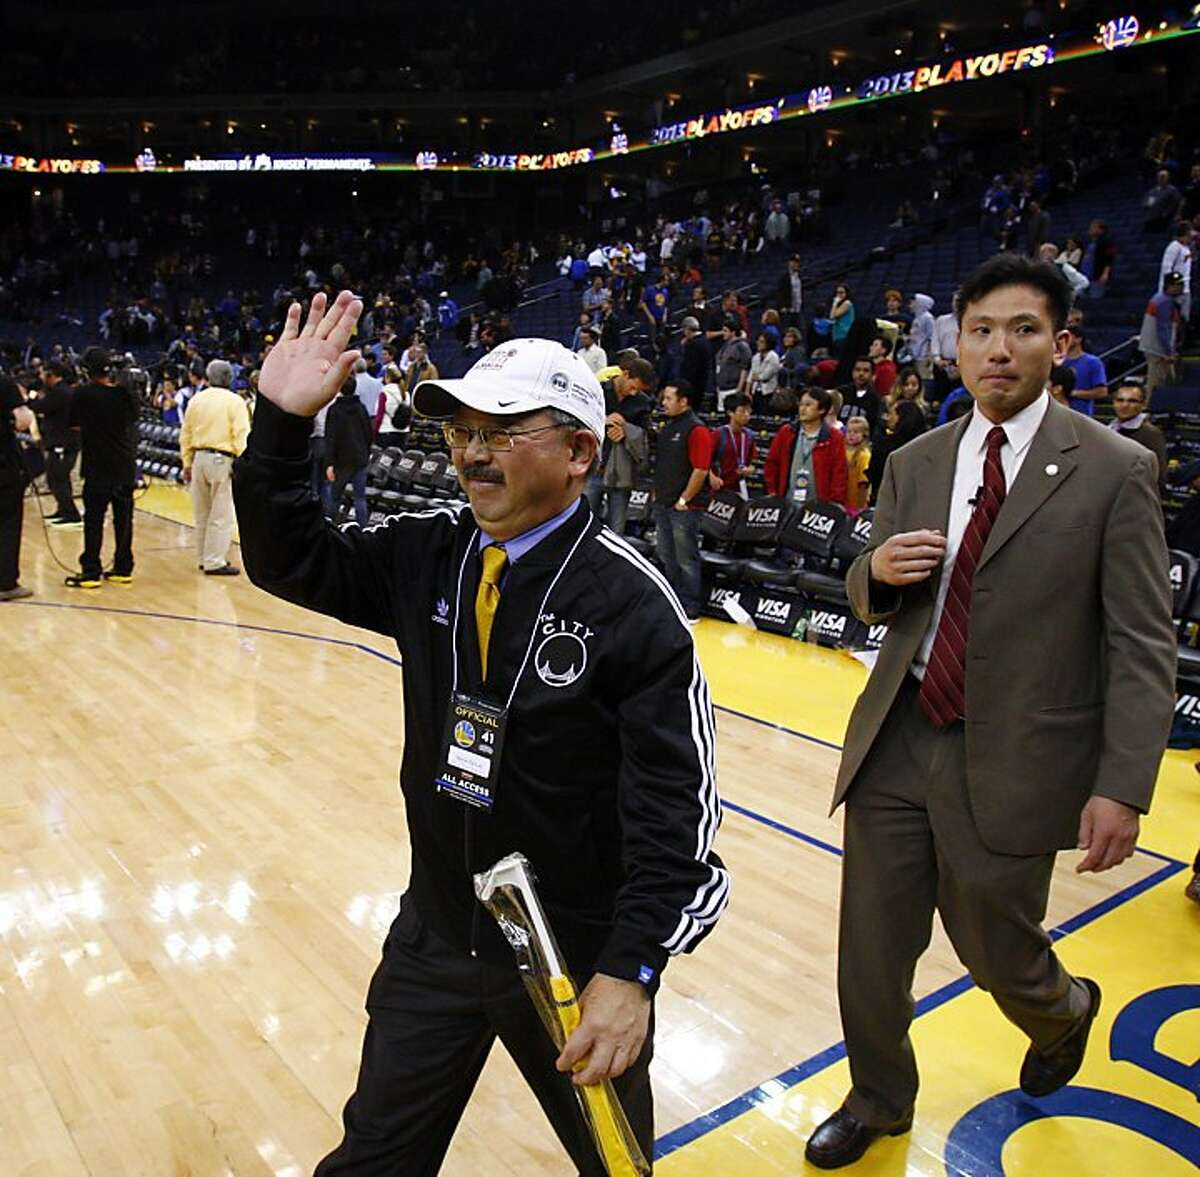 San Francisco Mayor Ed Lee waves to the crowd at Oracle Arena after the Warriors defeated the Spurs. The Golden State Warriors played the San Antonio Spurs at Oracle Arena in Oakland, Calif., on Monday, April 15, 2013.